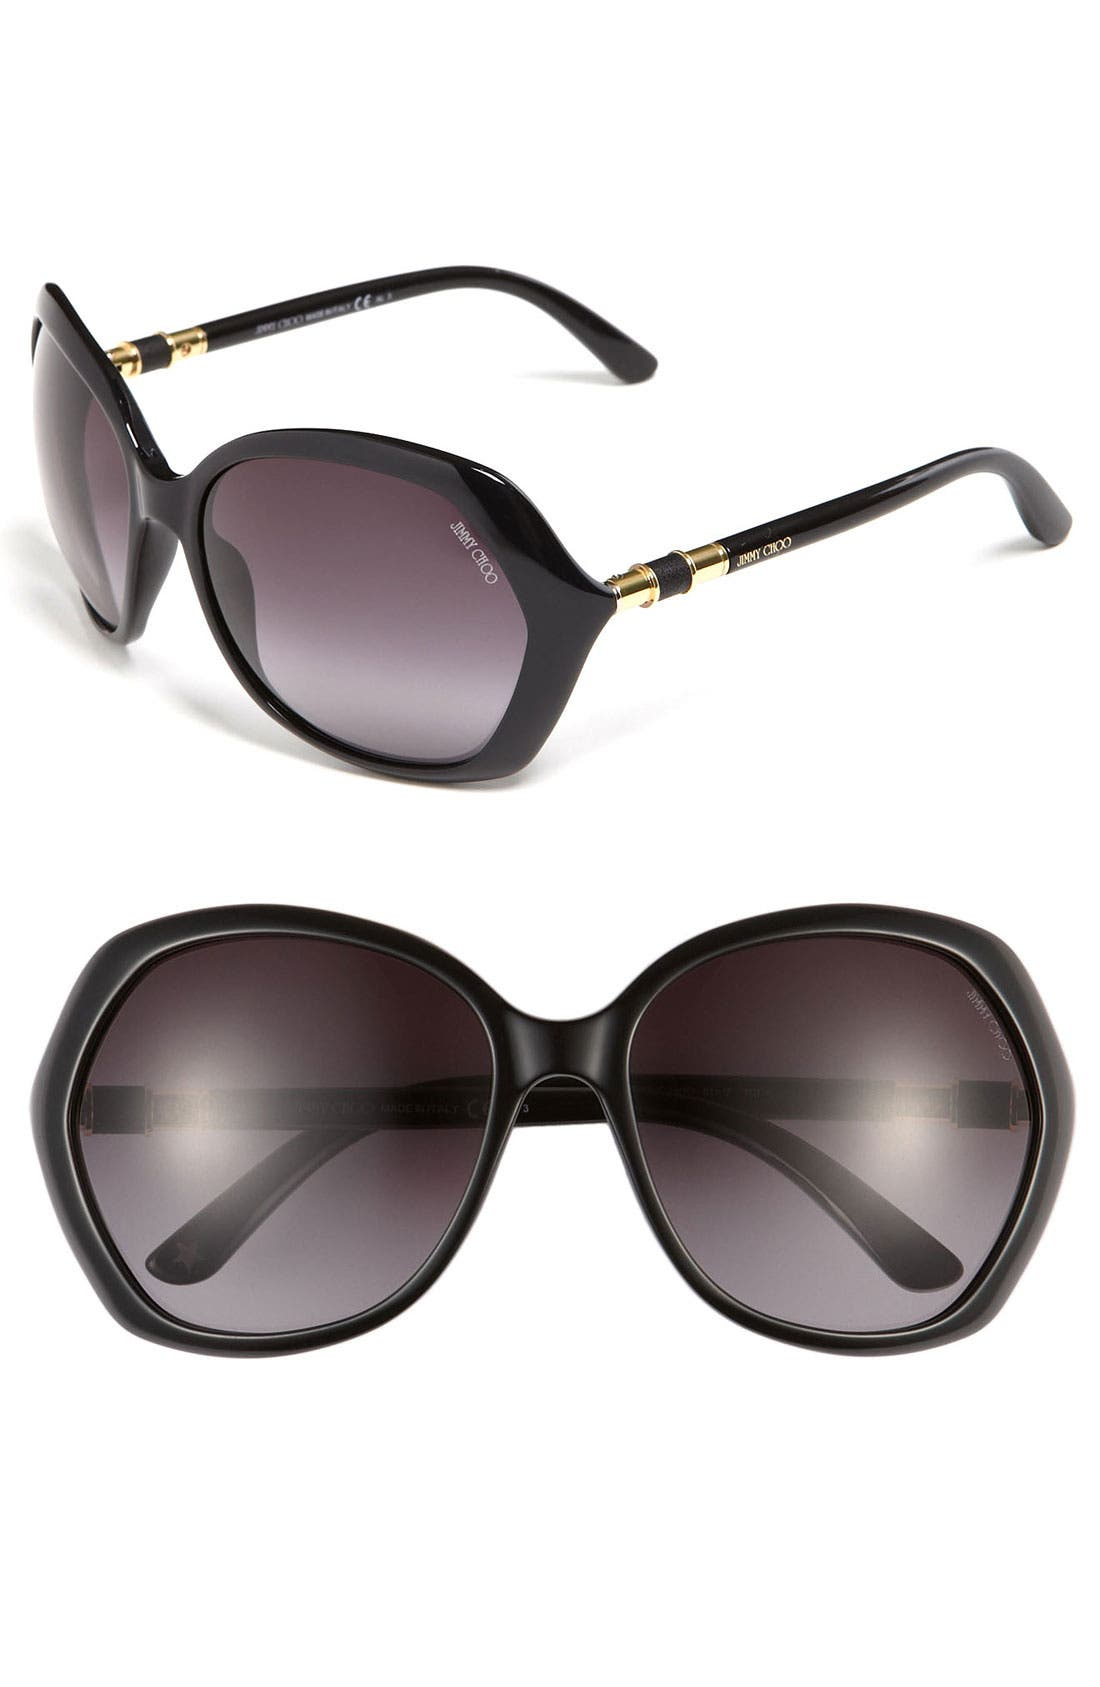 Alternate Image 1 Selected - Jimmy Choo 'Justine' Oversized Sunglasses